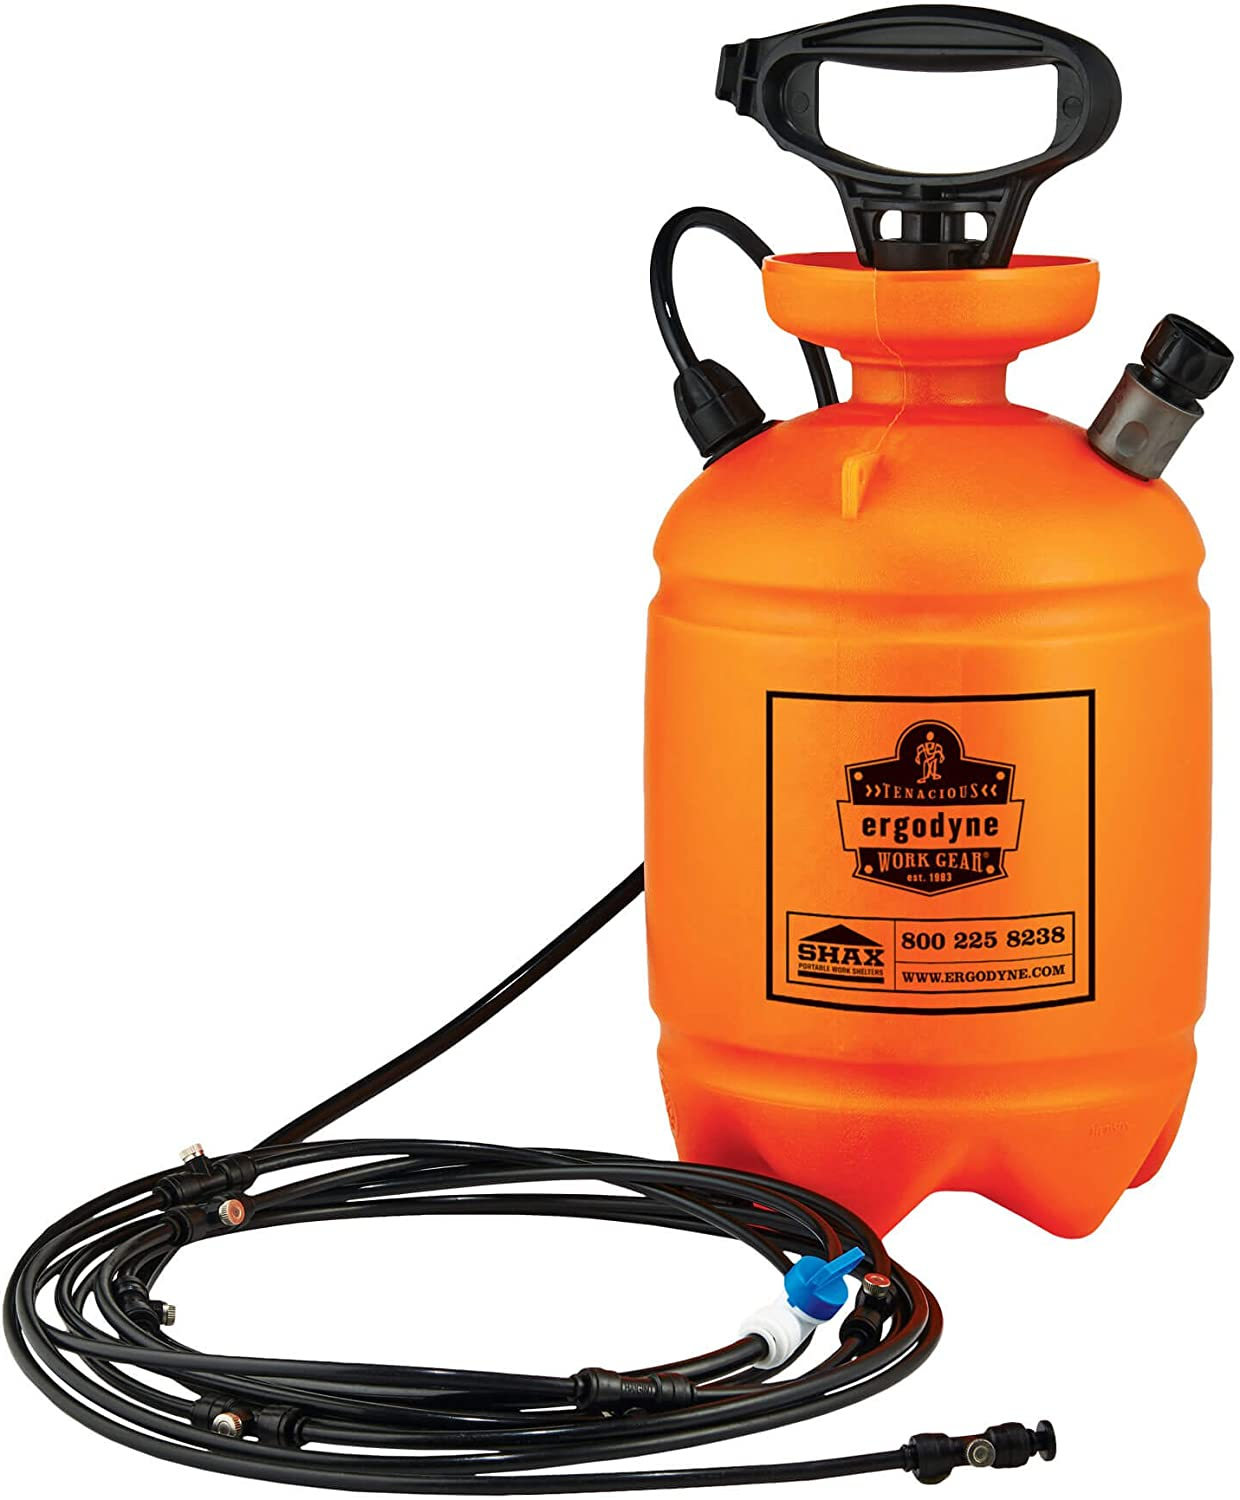 Portable Outdoor Misting System, Includes Straps to Attach to Tent Canopies or Fences, Ergodyne Shax 6095